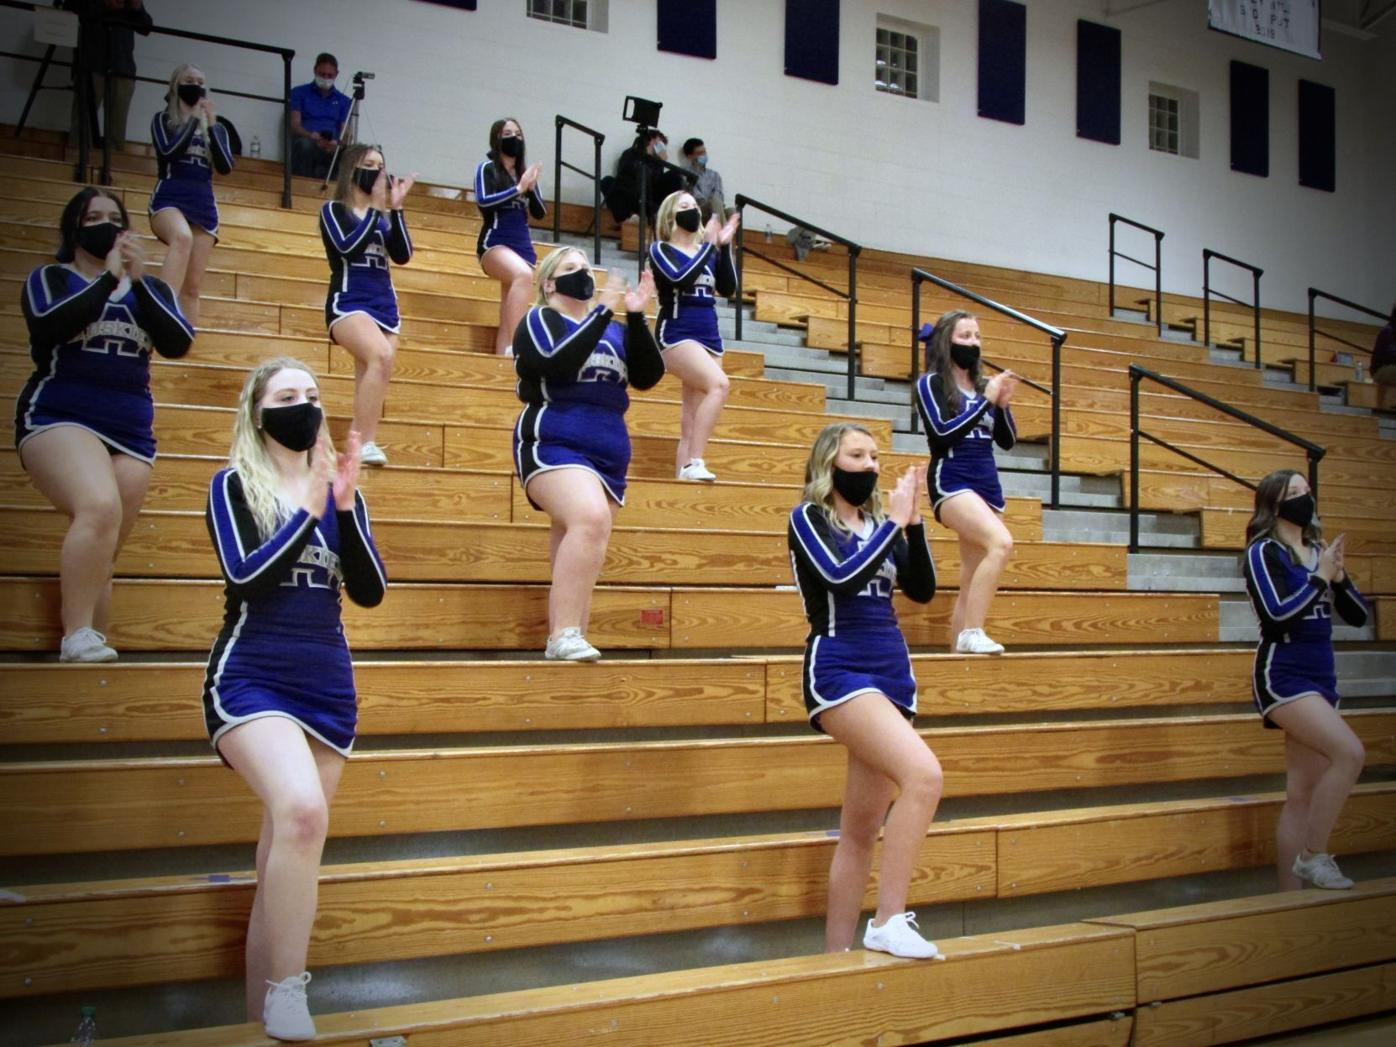 Varsity Cheerleaders Jan. 13